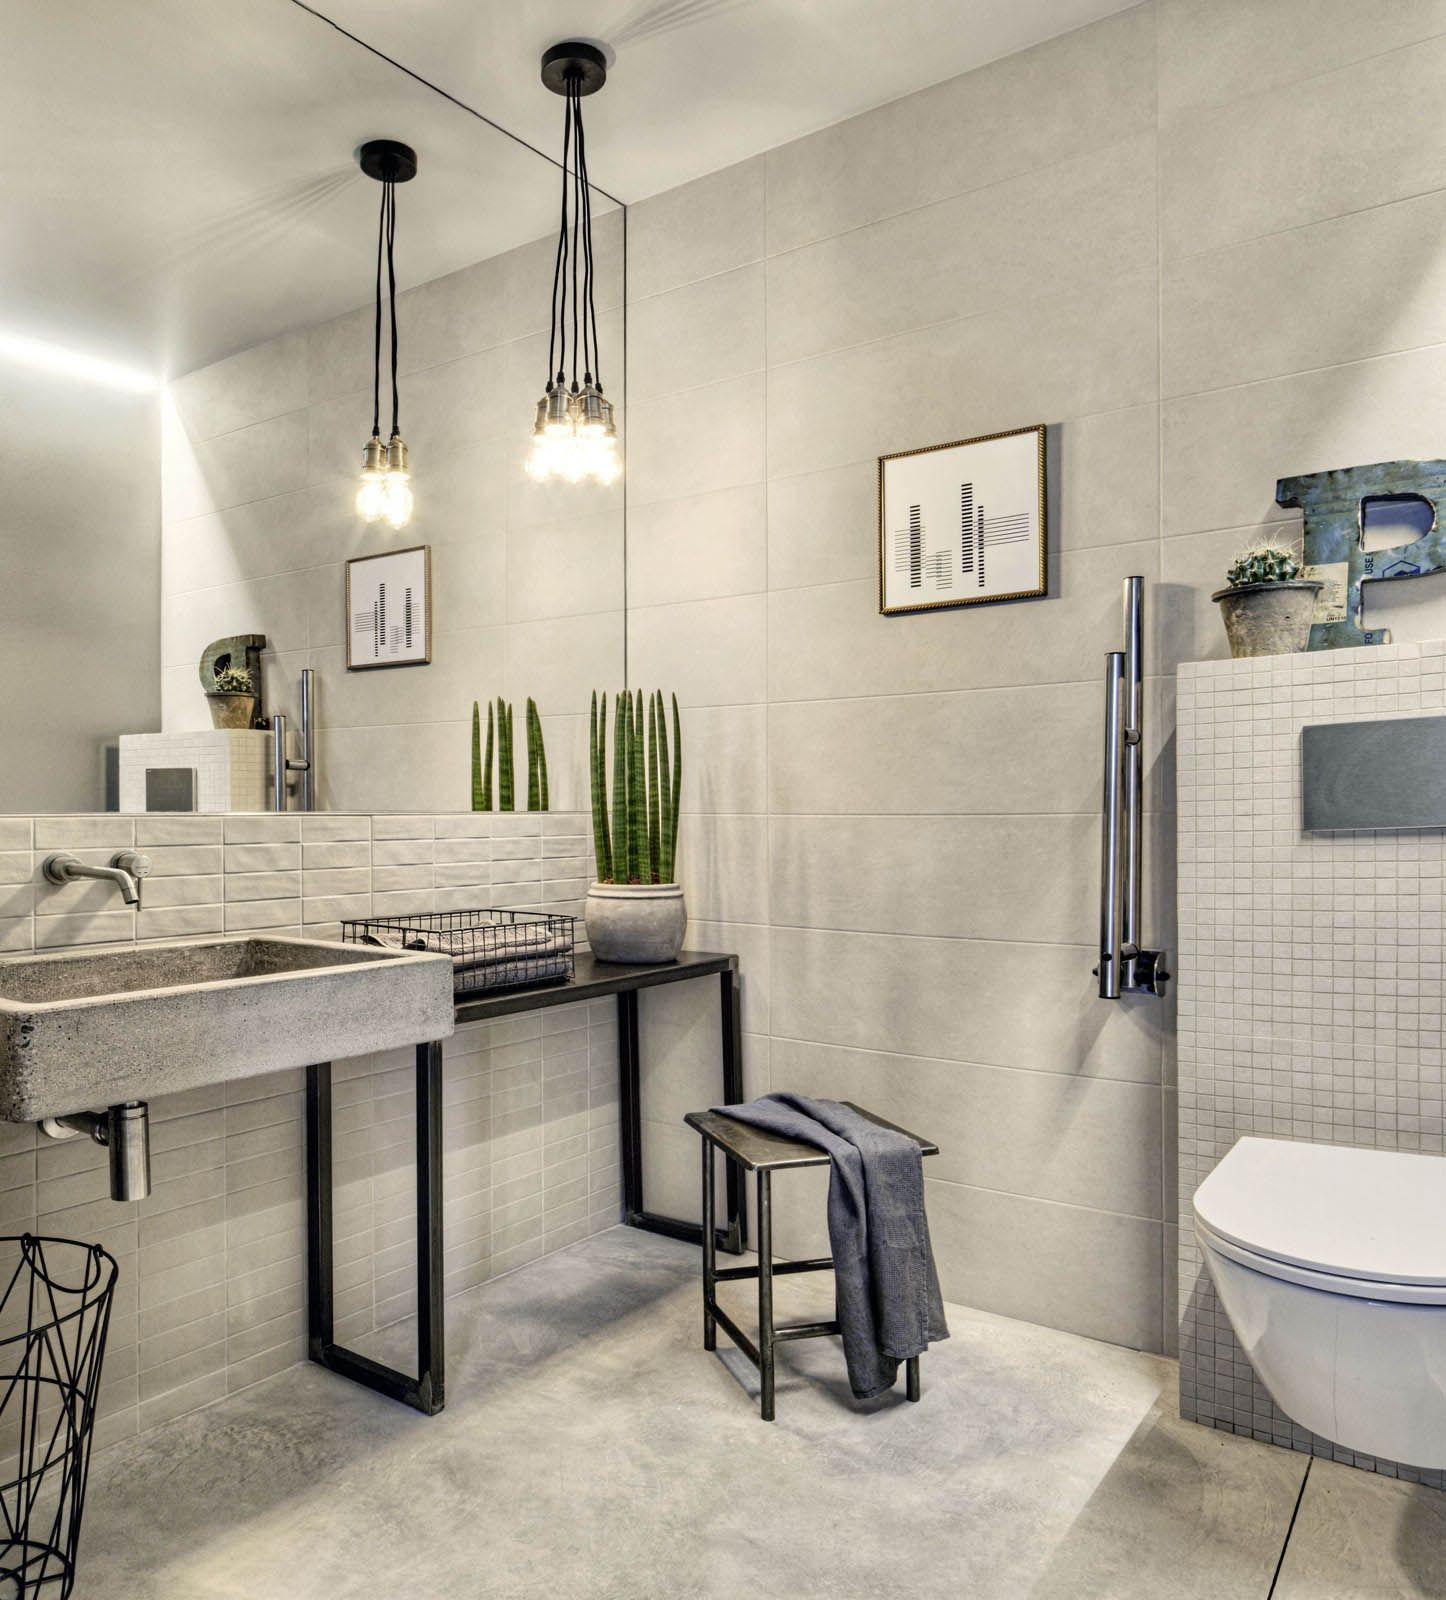 The Different Tiles And Their Shades Of Colour Blend So Well To Help Create A Smoo Industrial Style Bathroom Bathroom Design Inspiration Bathroom Design Luxury